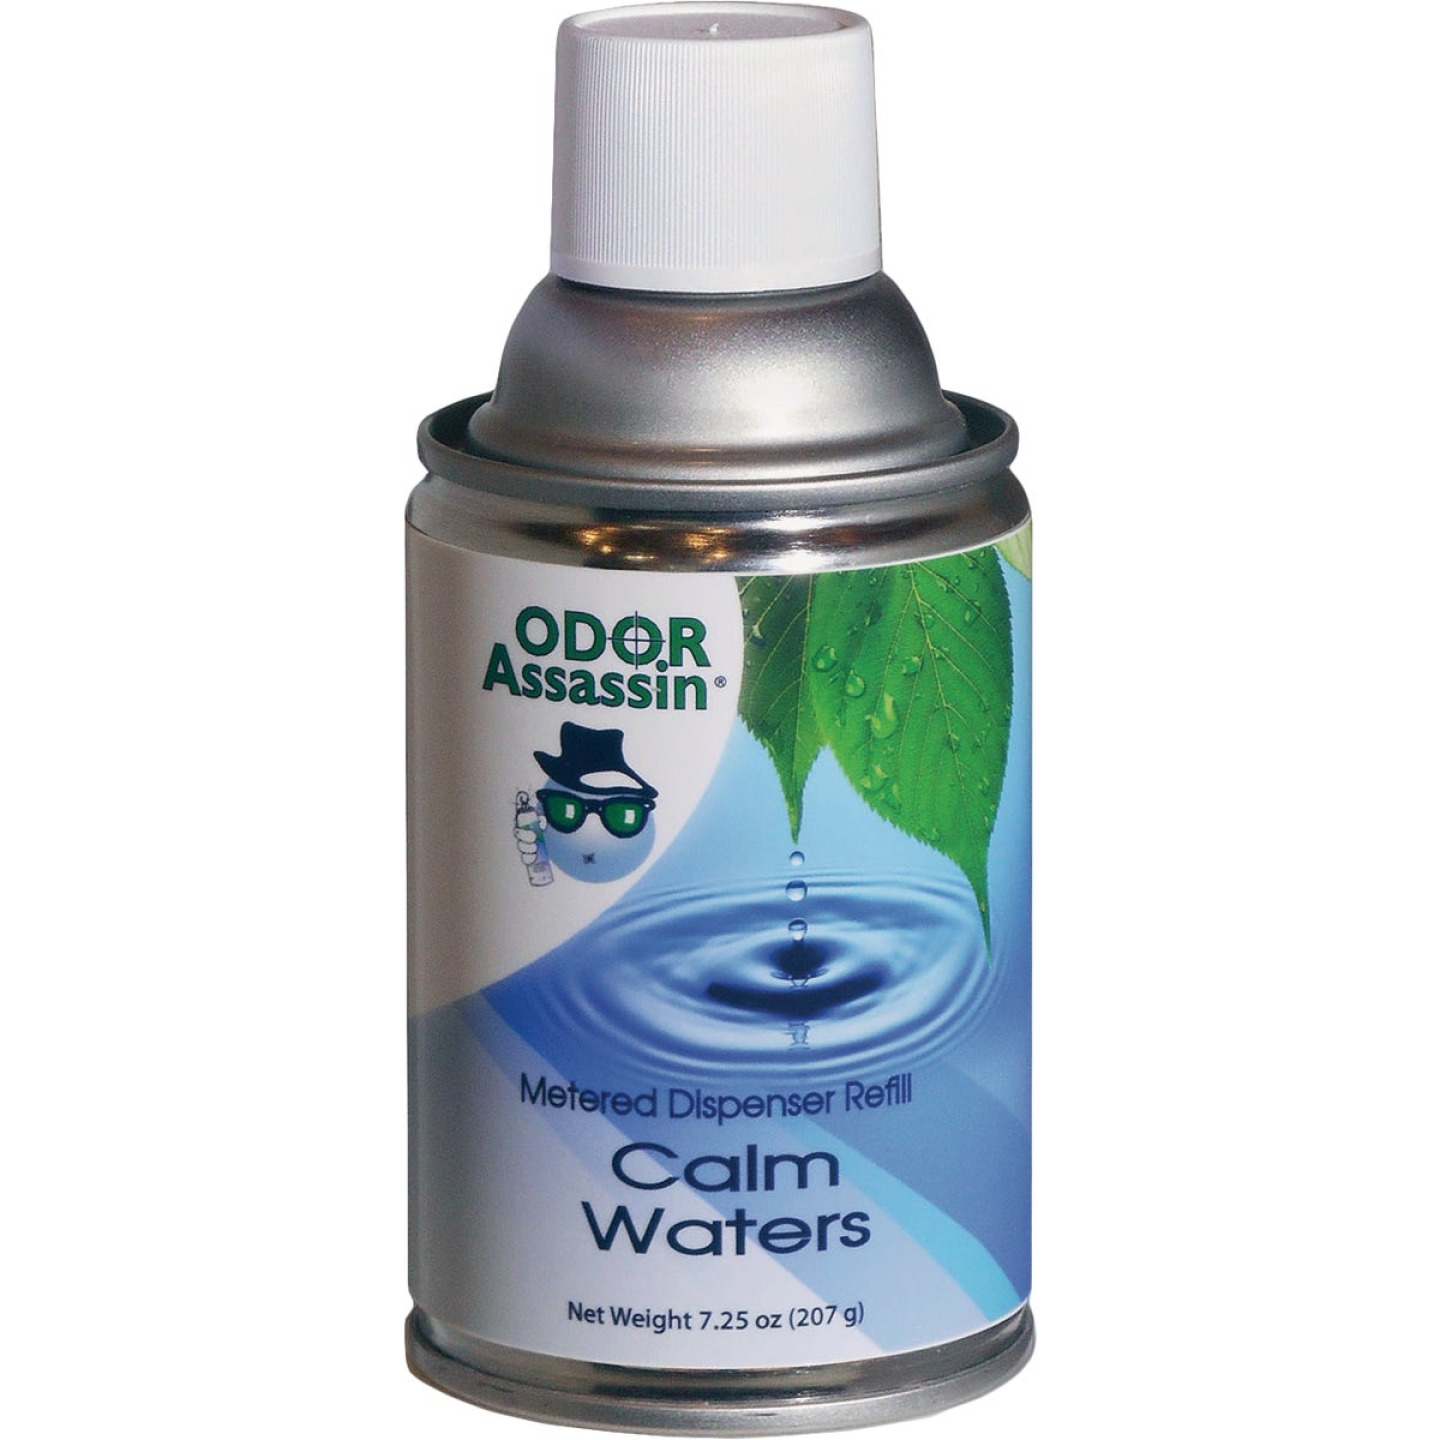 Odor Assassin 7.25 Oz. Calm Waters Metered Refill Image 1